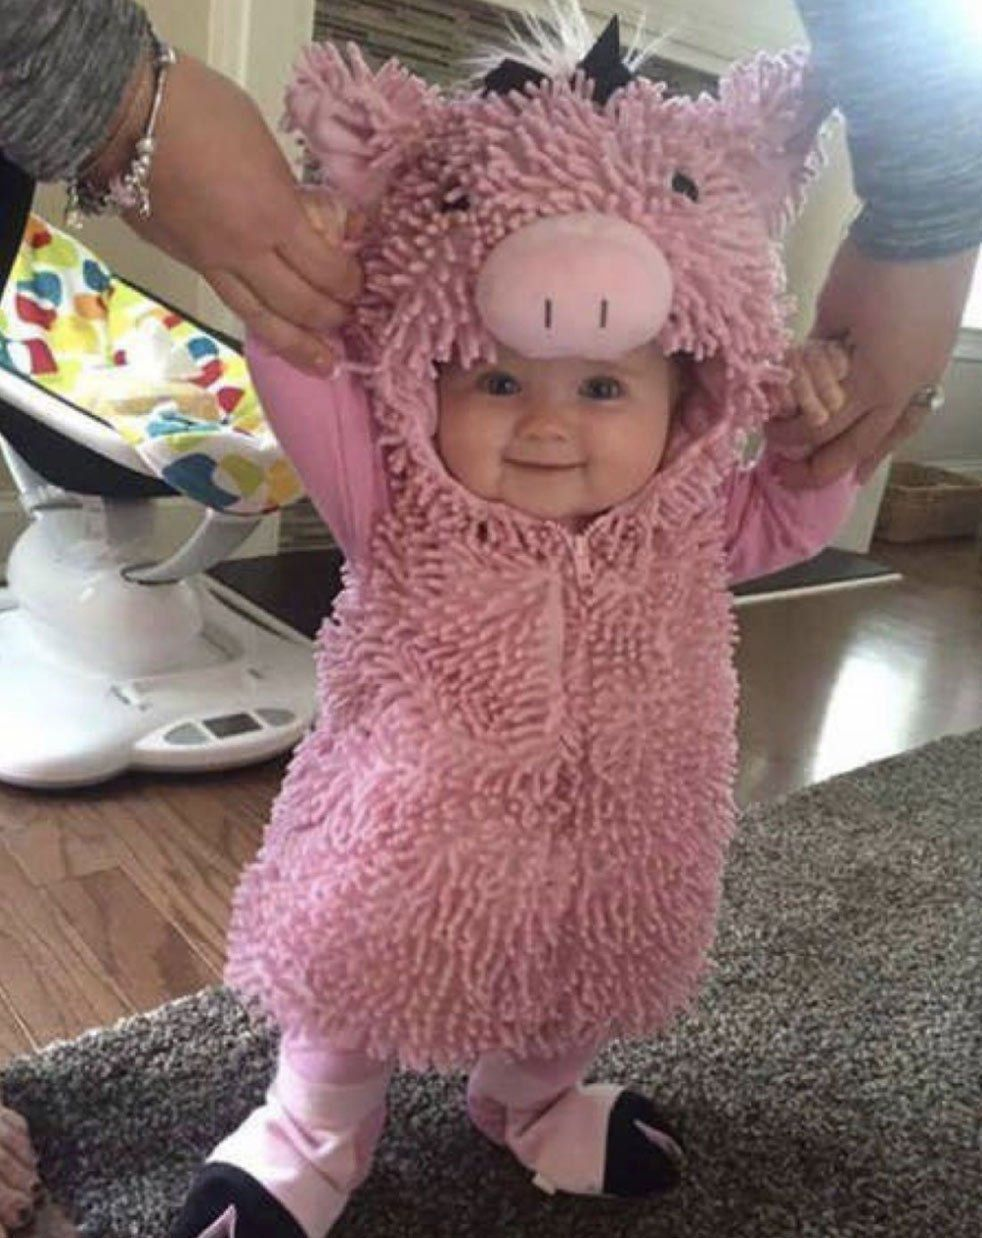 Adorable Baby Halloween costumes that will make you go awww